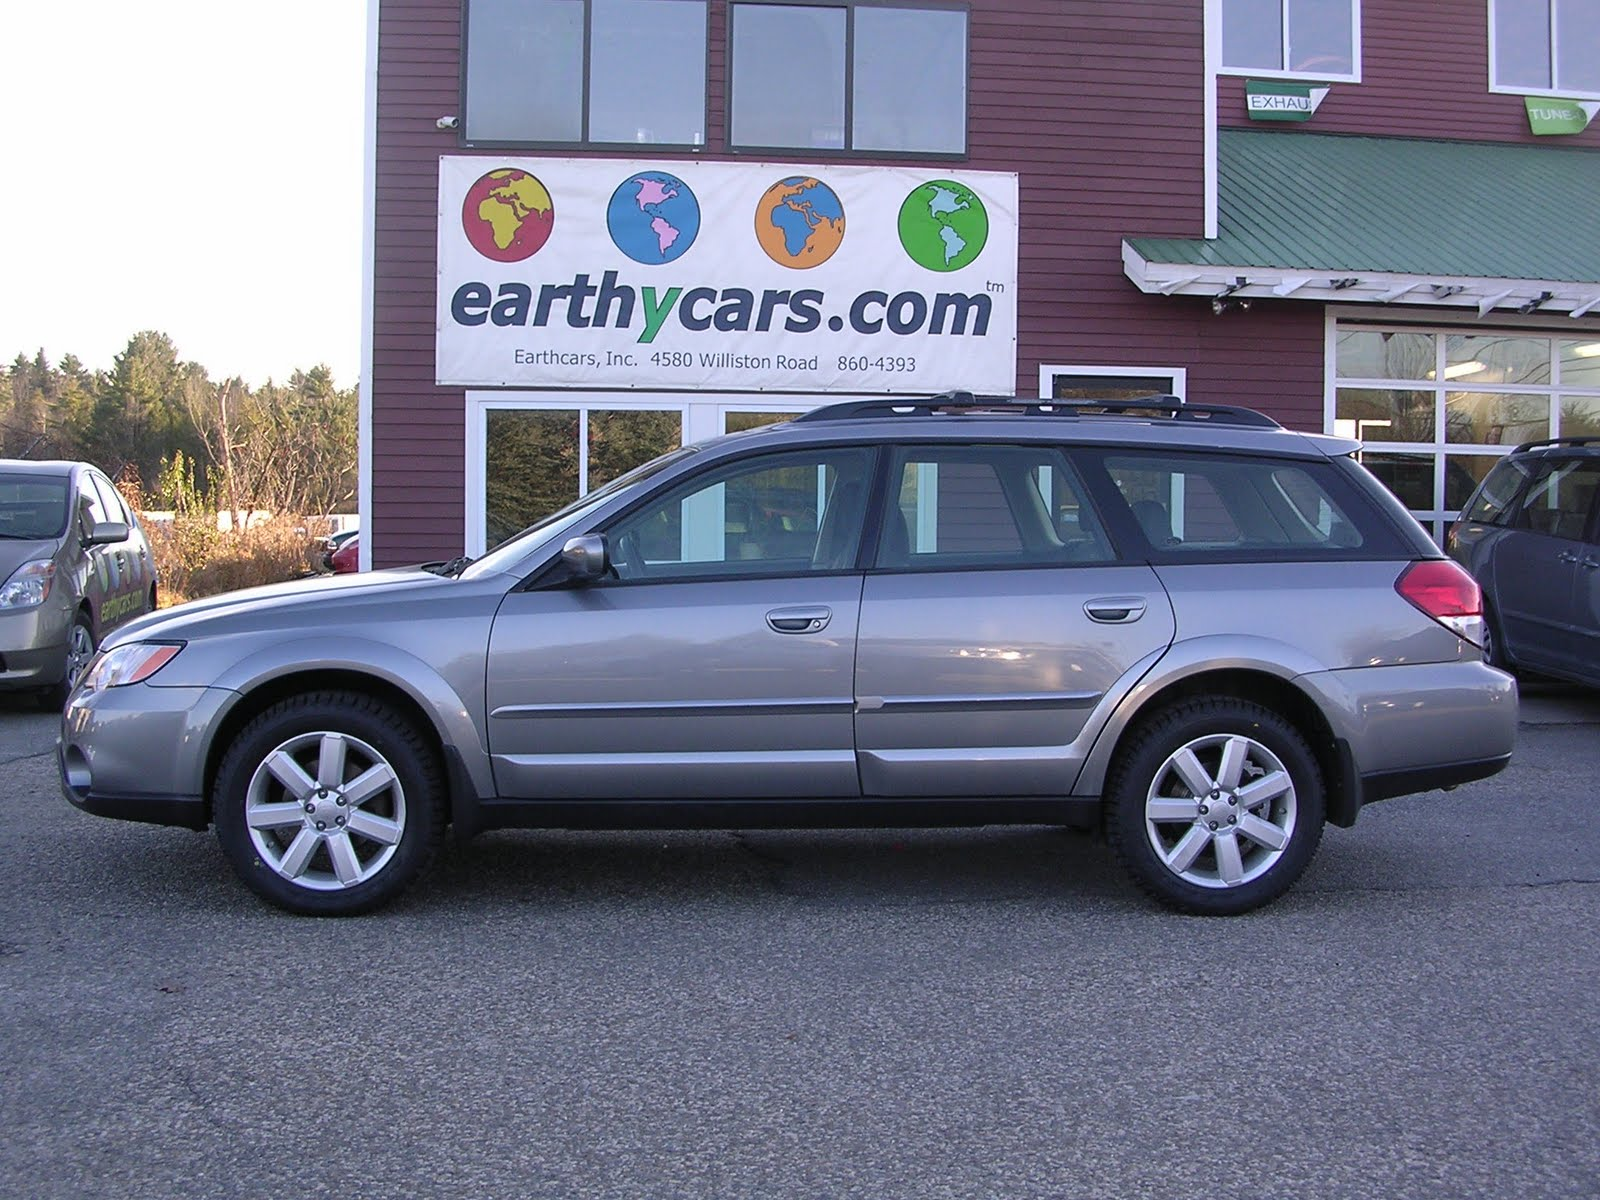 Subaru Ll Bean >> Earthy Cars Blog: EARTHY CAR OF THE WEEK: 2008 Subaru Outback 2.5i Limited L.L. Bean Edition